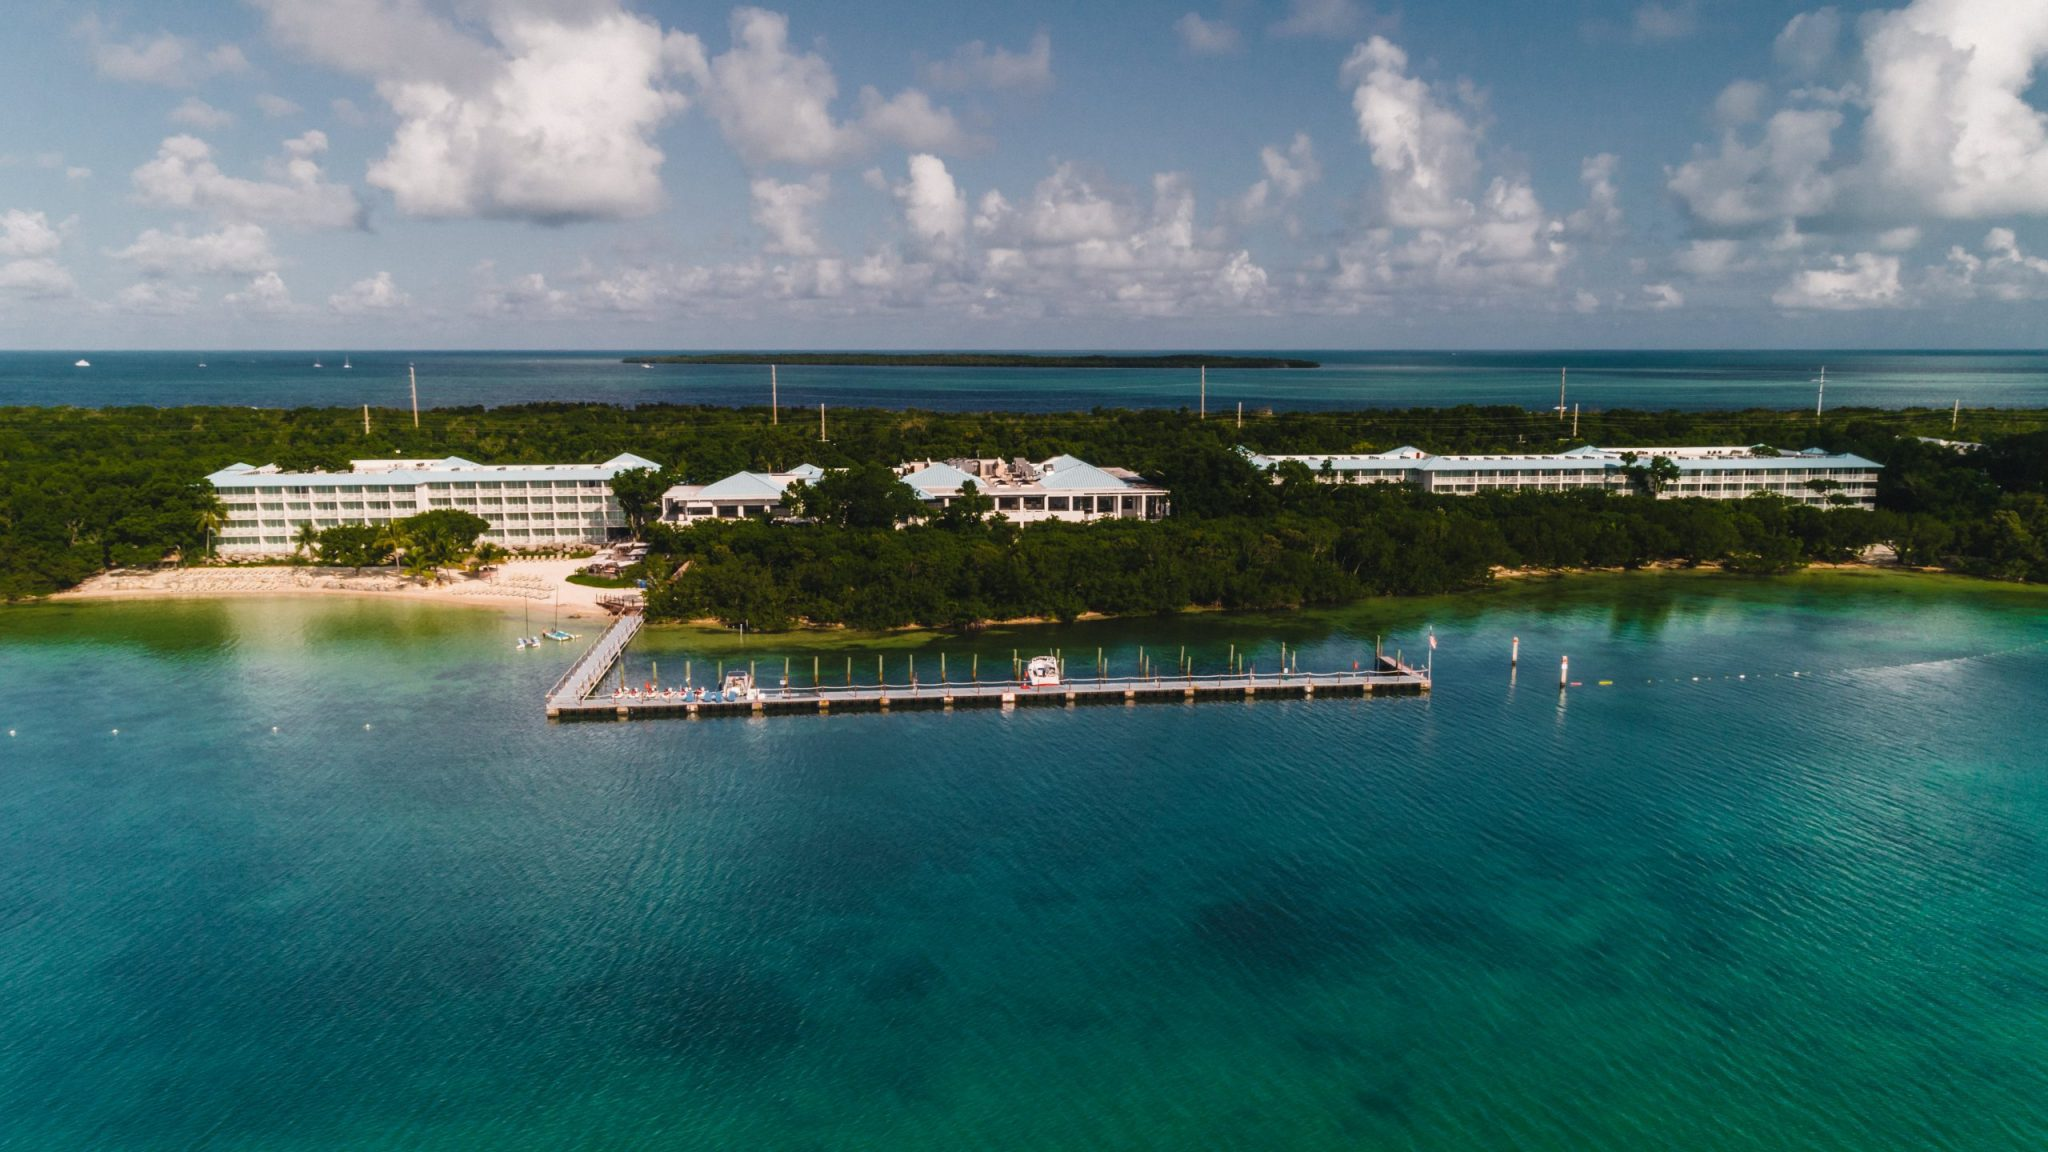 Hotel pier photography from a drone